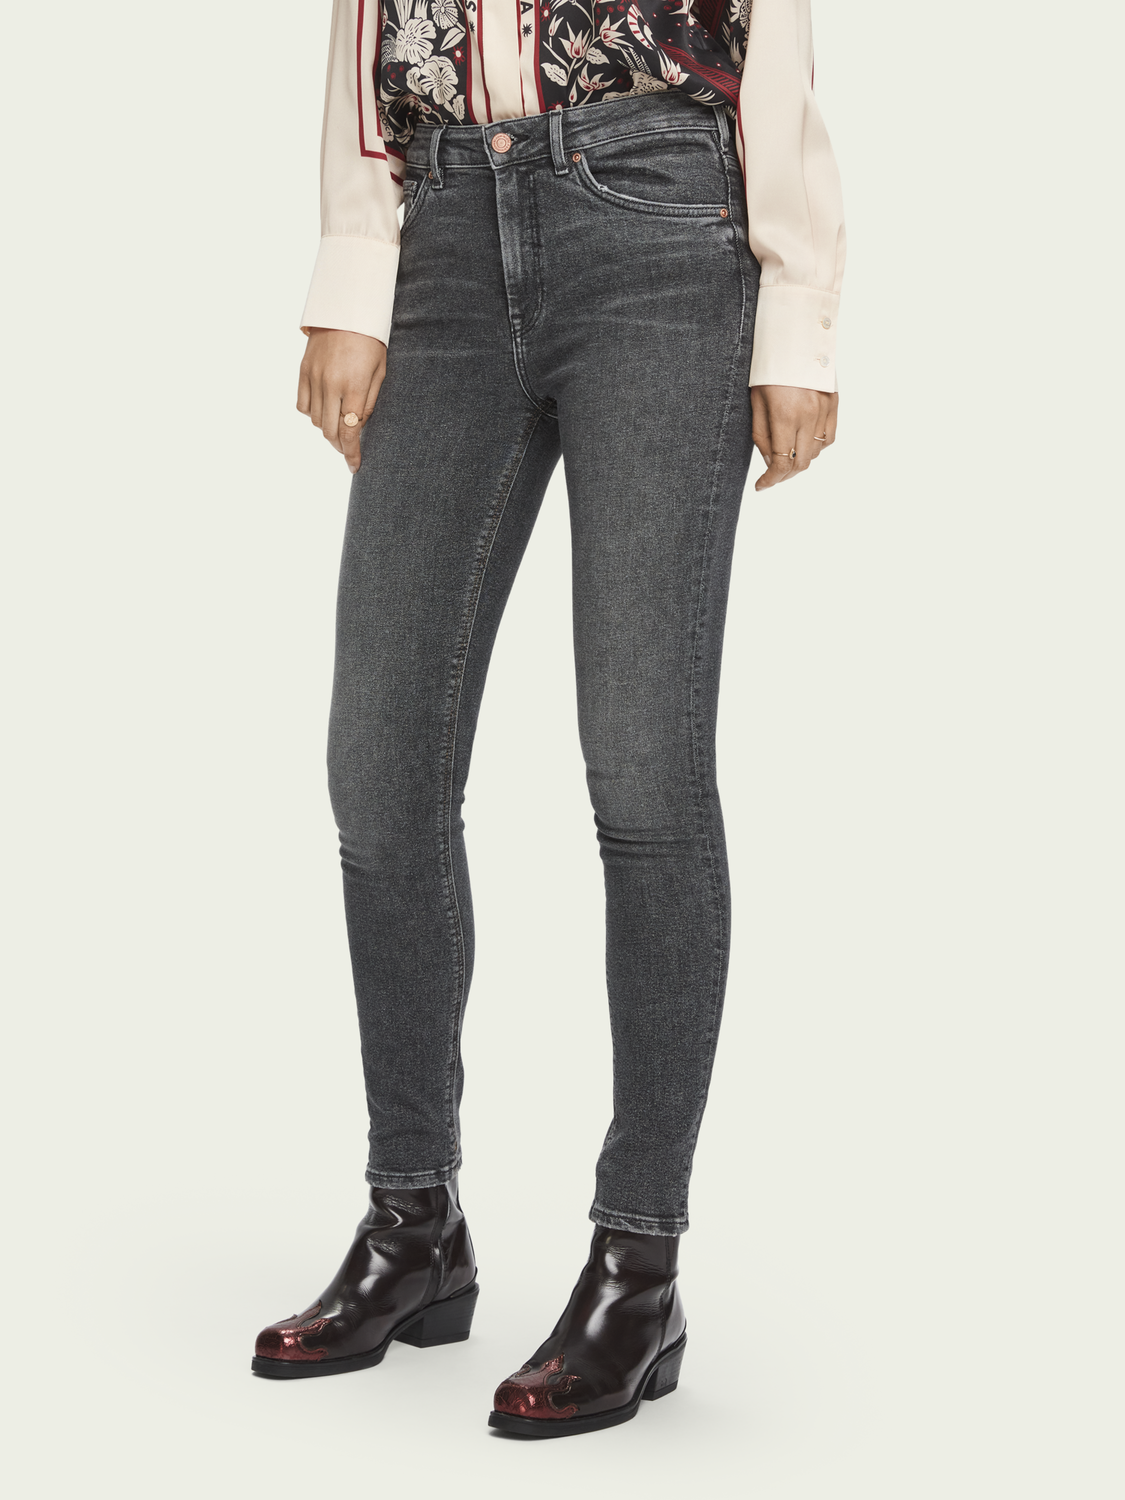 Damen Haut – Touch Of Dust | High-Rise Skinny Fit Jeans mit Stretchanteil